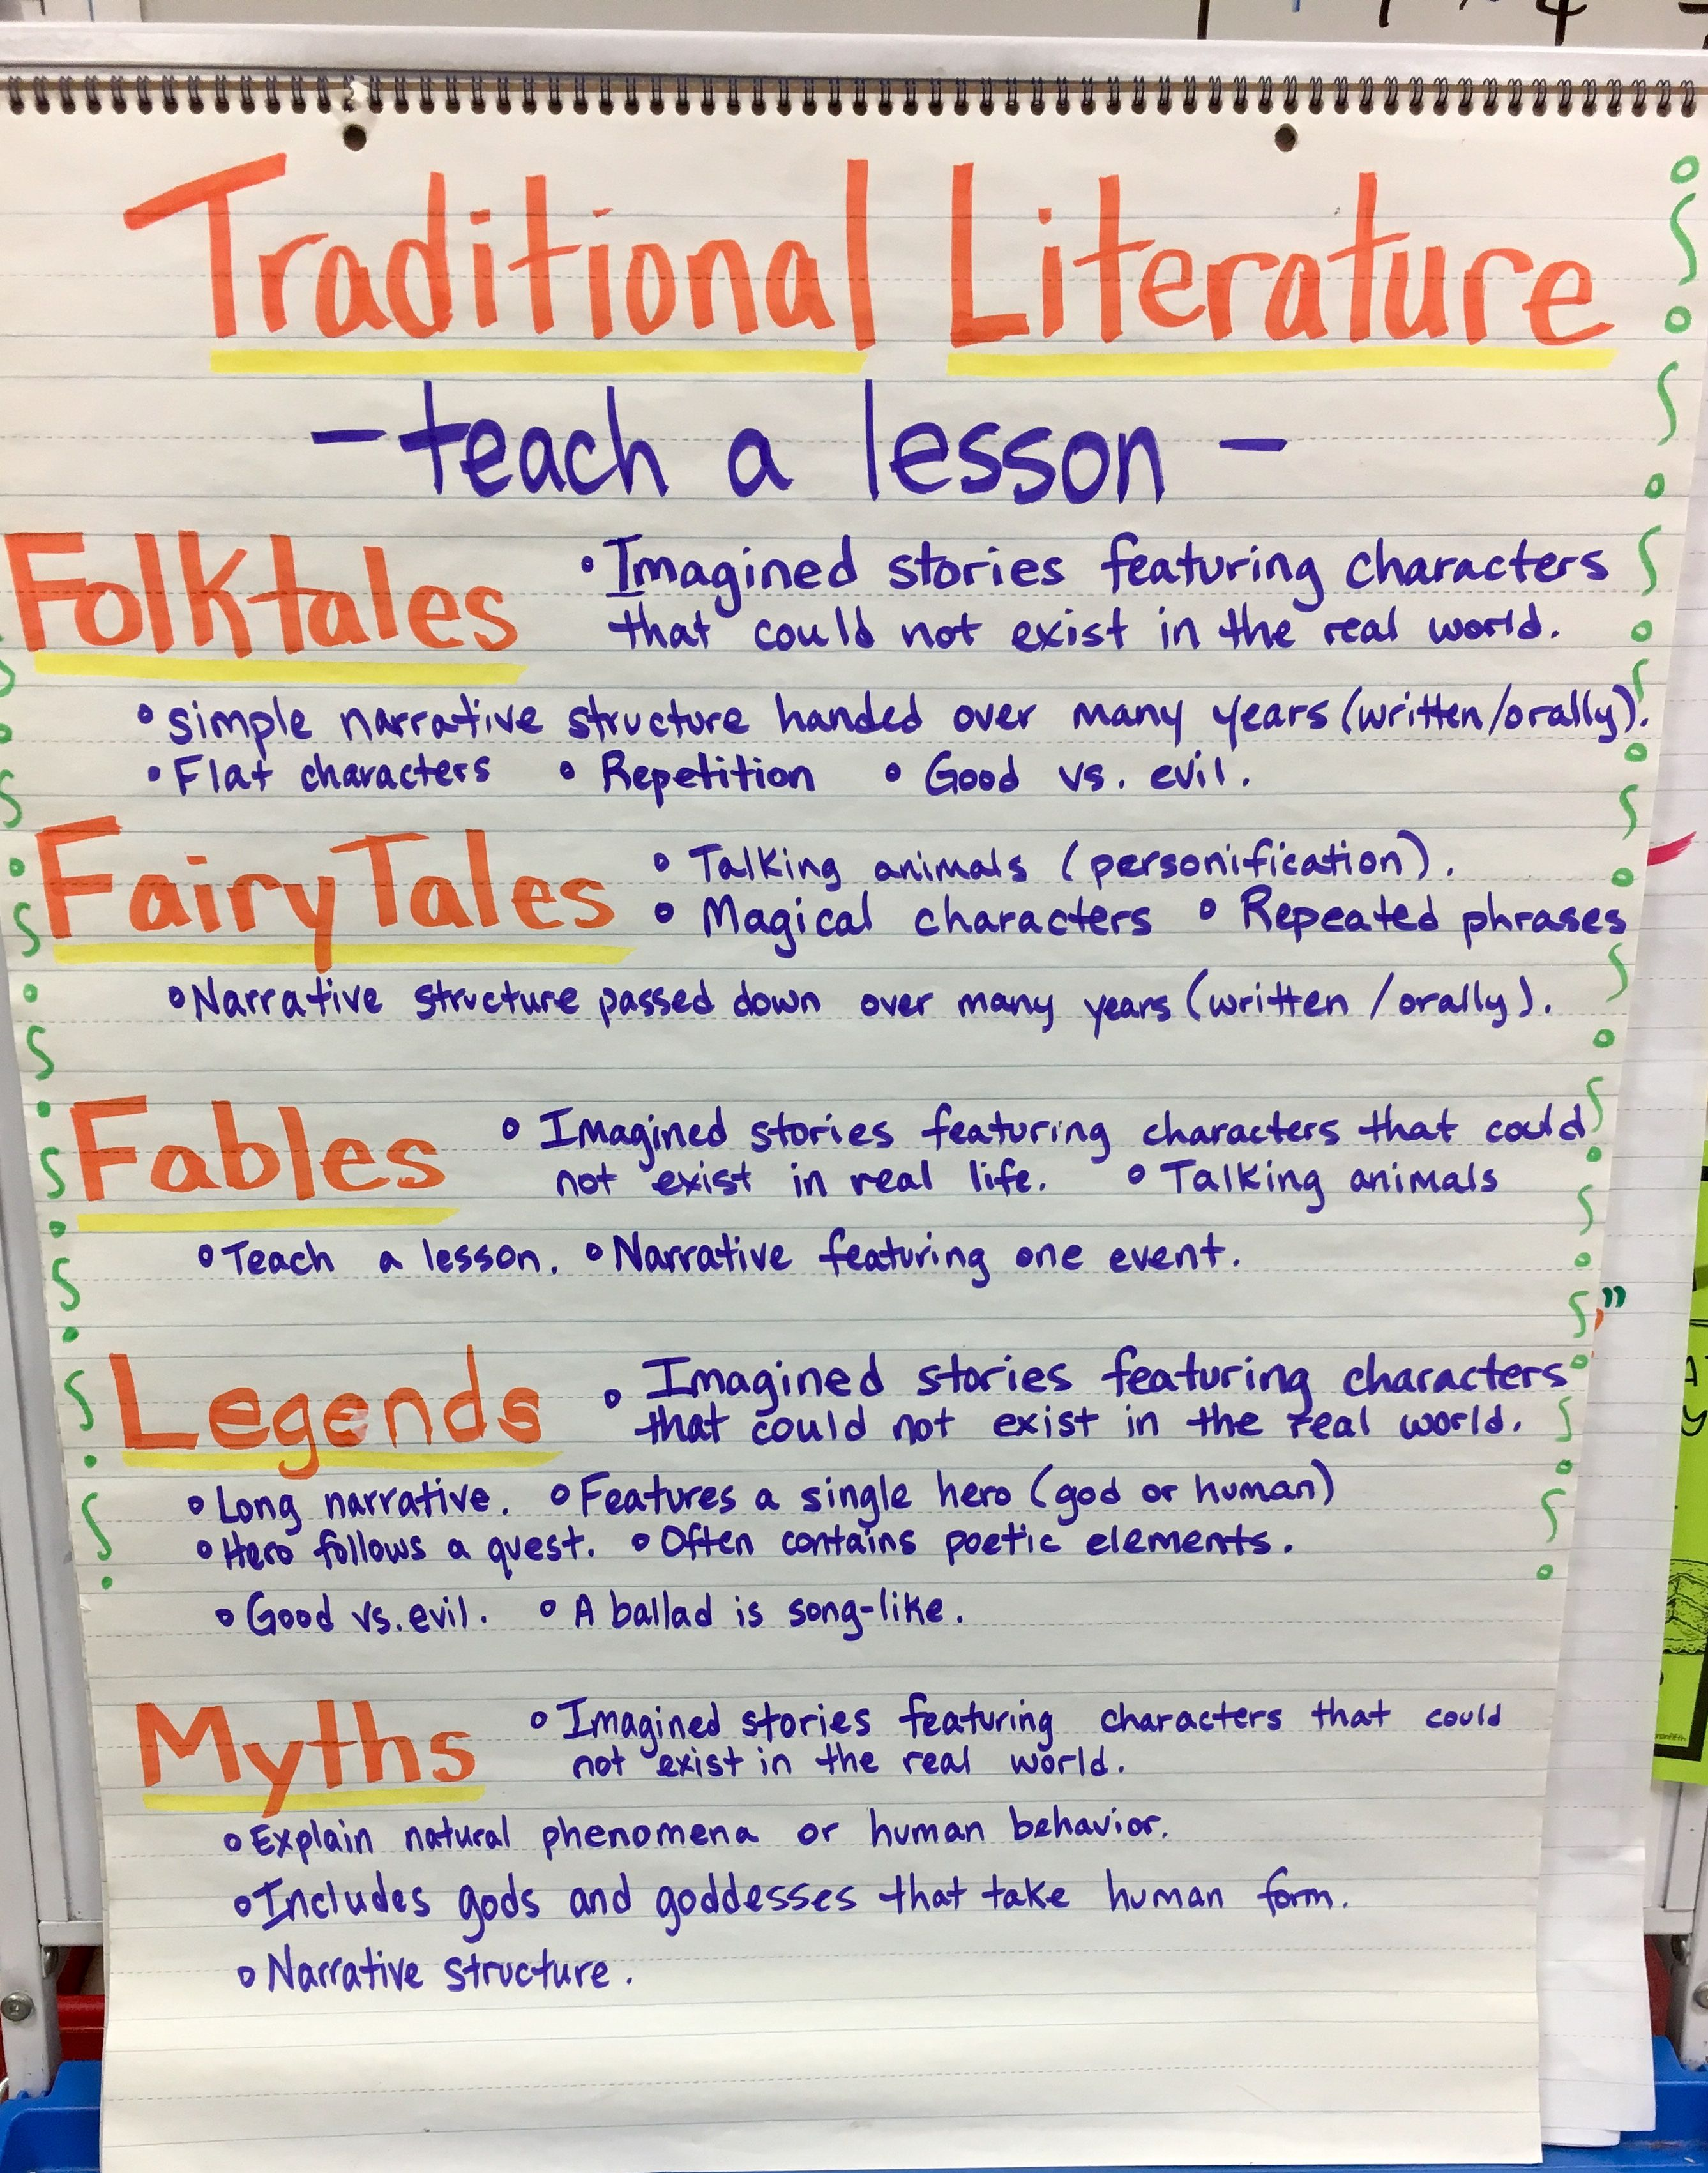 Traditional Literature Folktales Fables Fairy Tales Myths